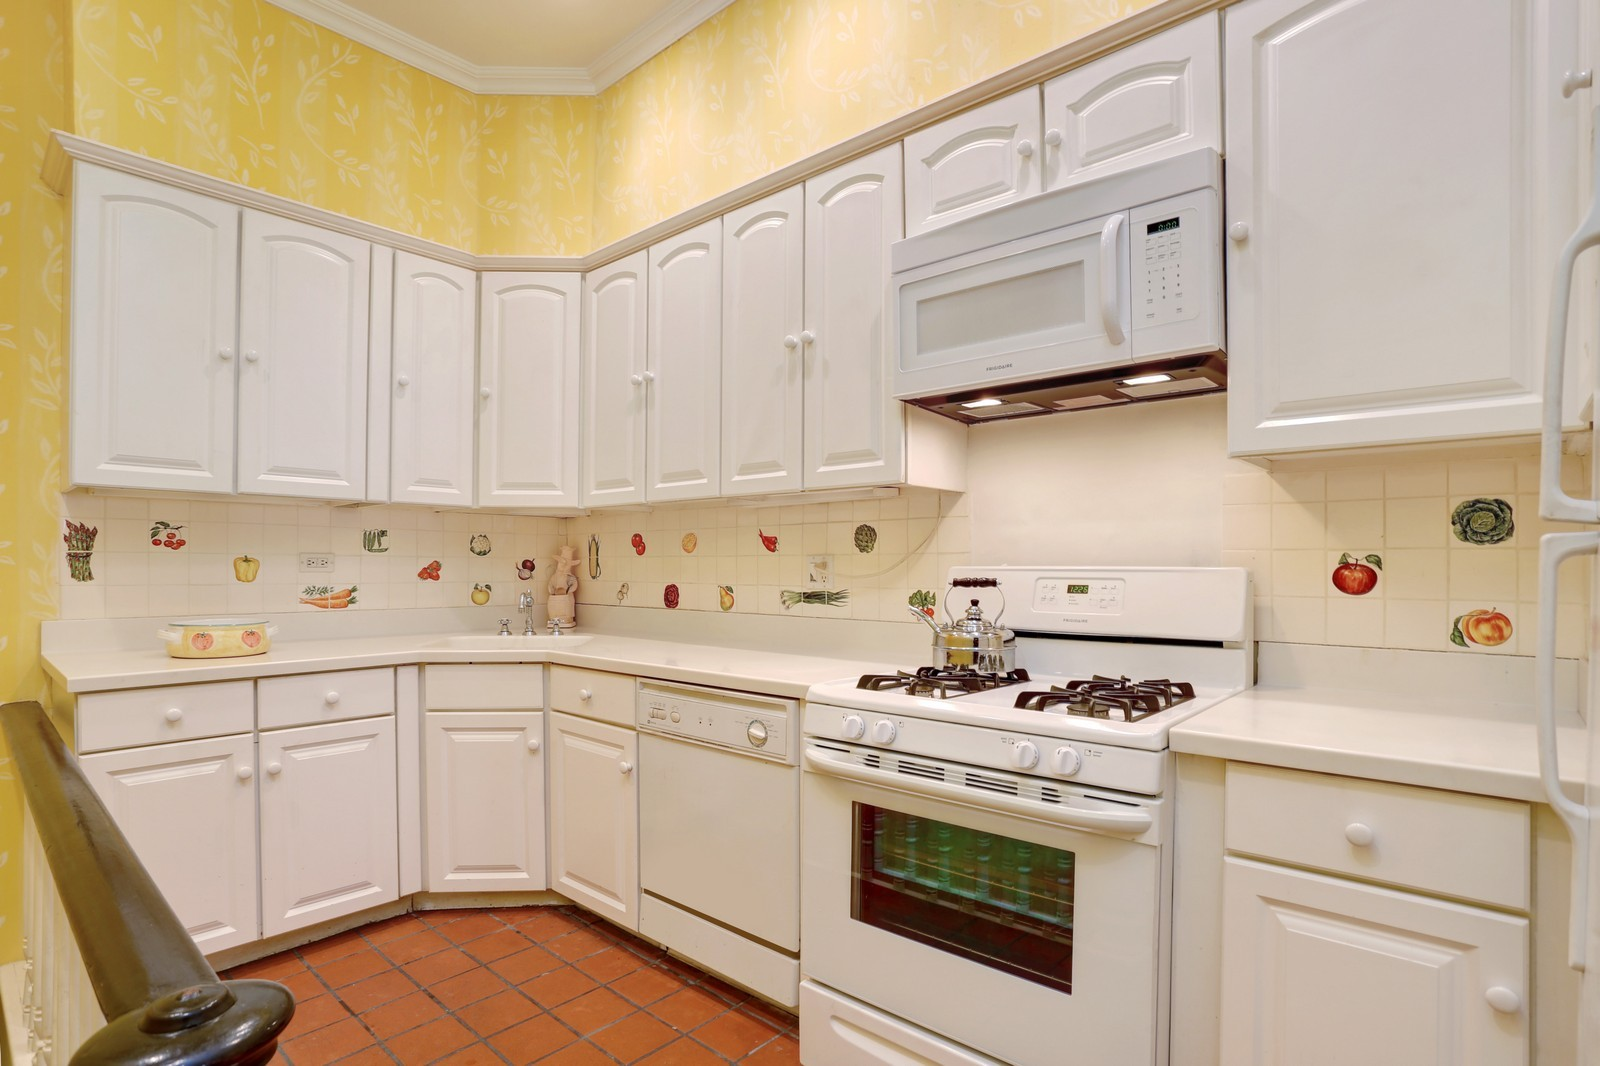 Kitchen cabinets 65th street brooklyn - Corcoran 134 East 65th Street Upper East Side Real Estate Manhattan For Sale Homes Upper East Side Townhouse Sharon Baum David Enloe